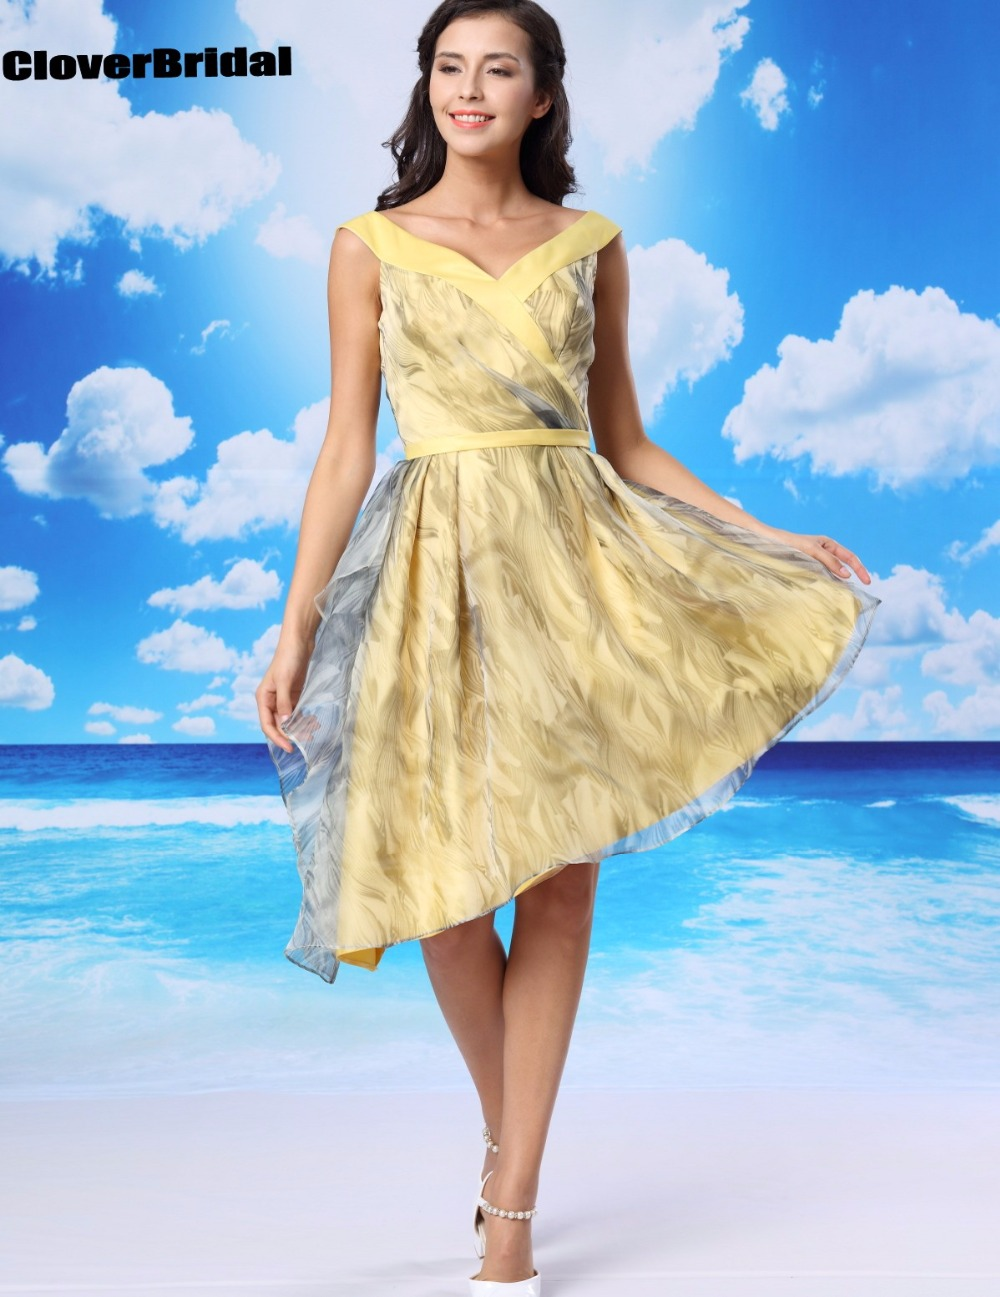 CloverBridal in stock yellow 8 grade beautiful cheap homecoming dresses graduation cute high low young girls printed dress